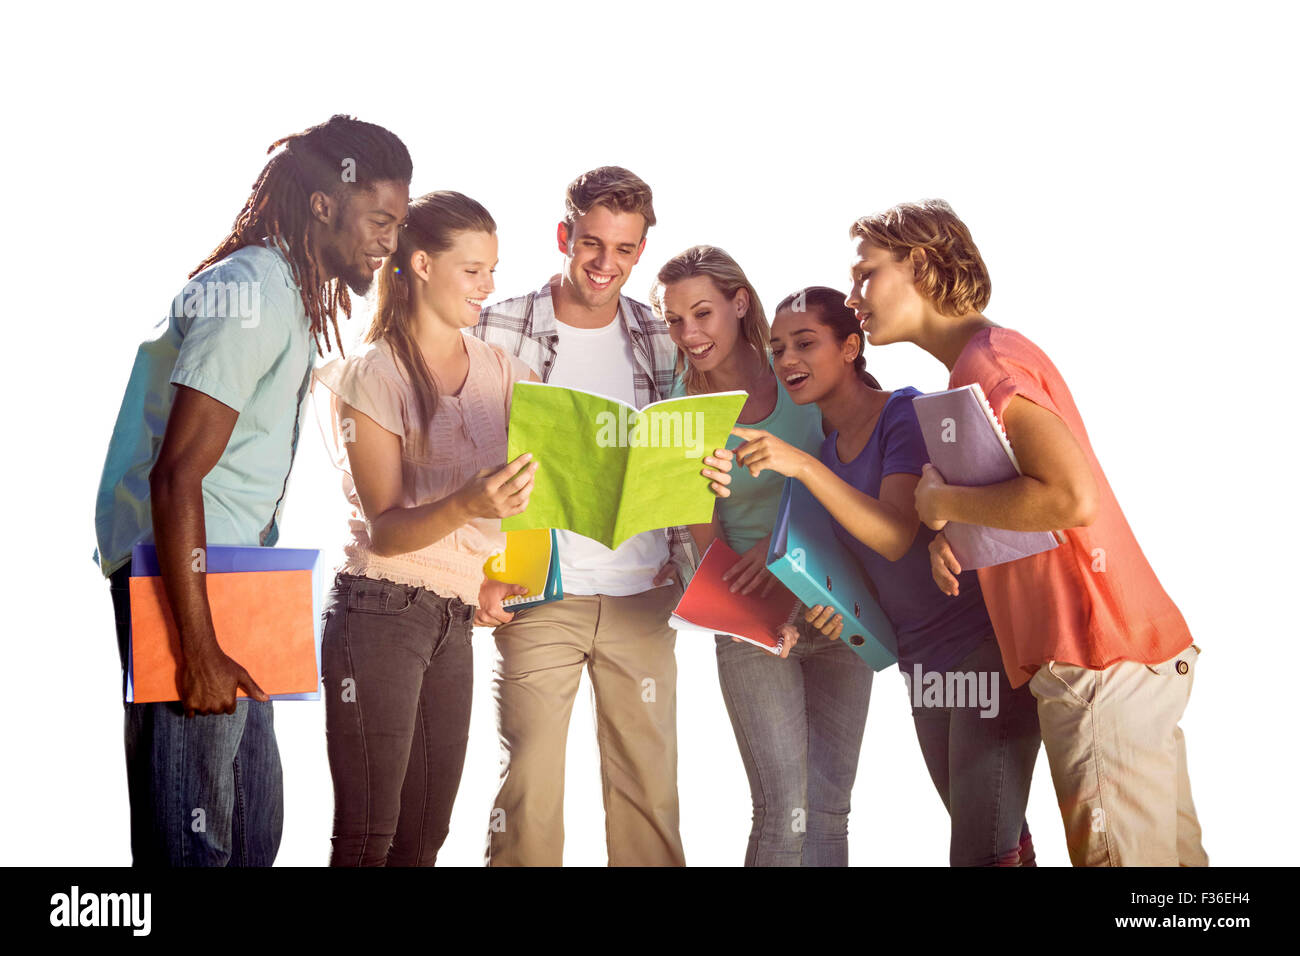 Composite image of happy students outside on campus - Stock Image